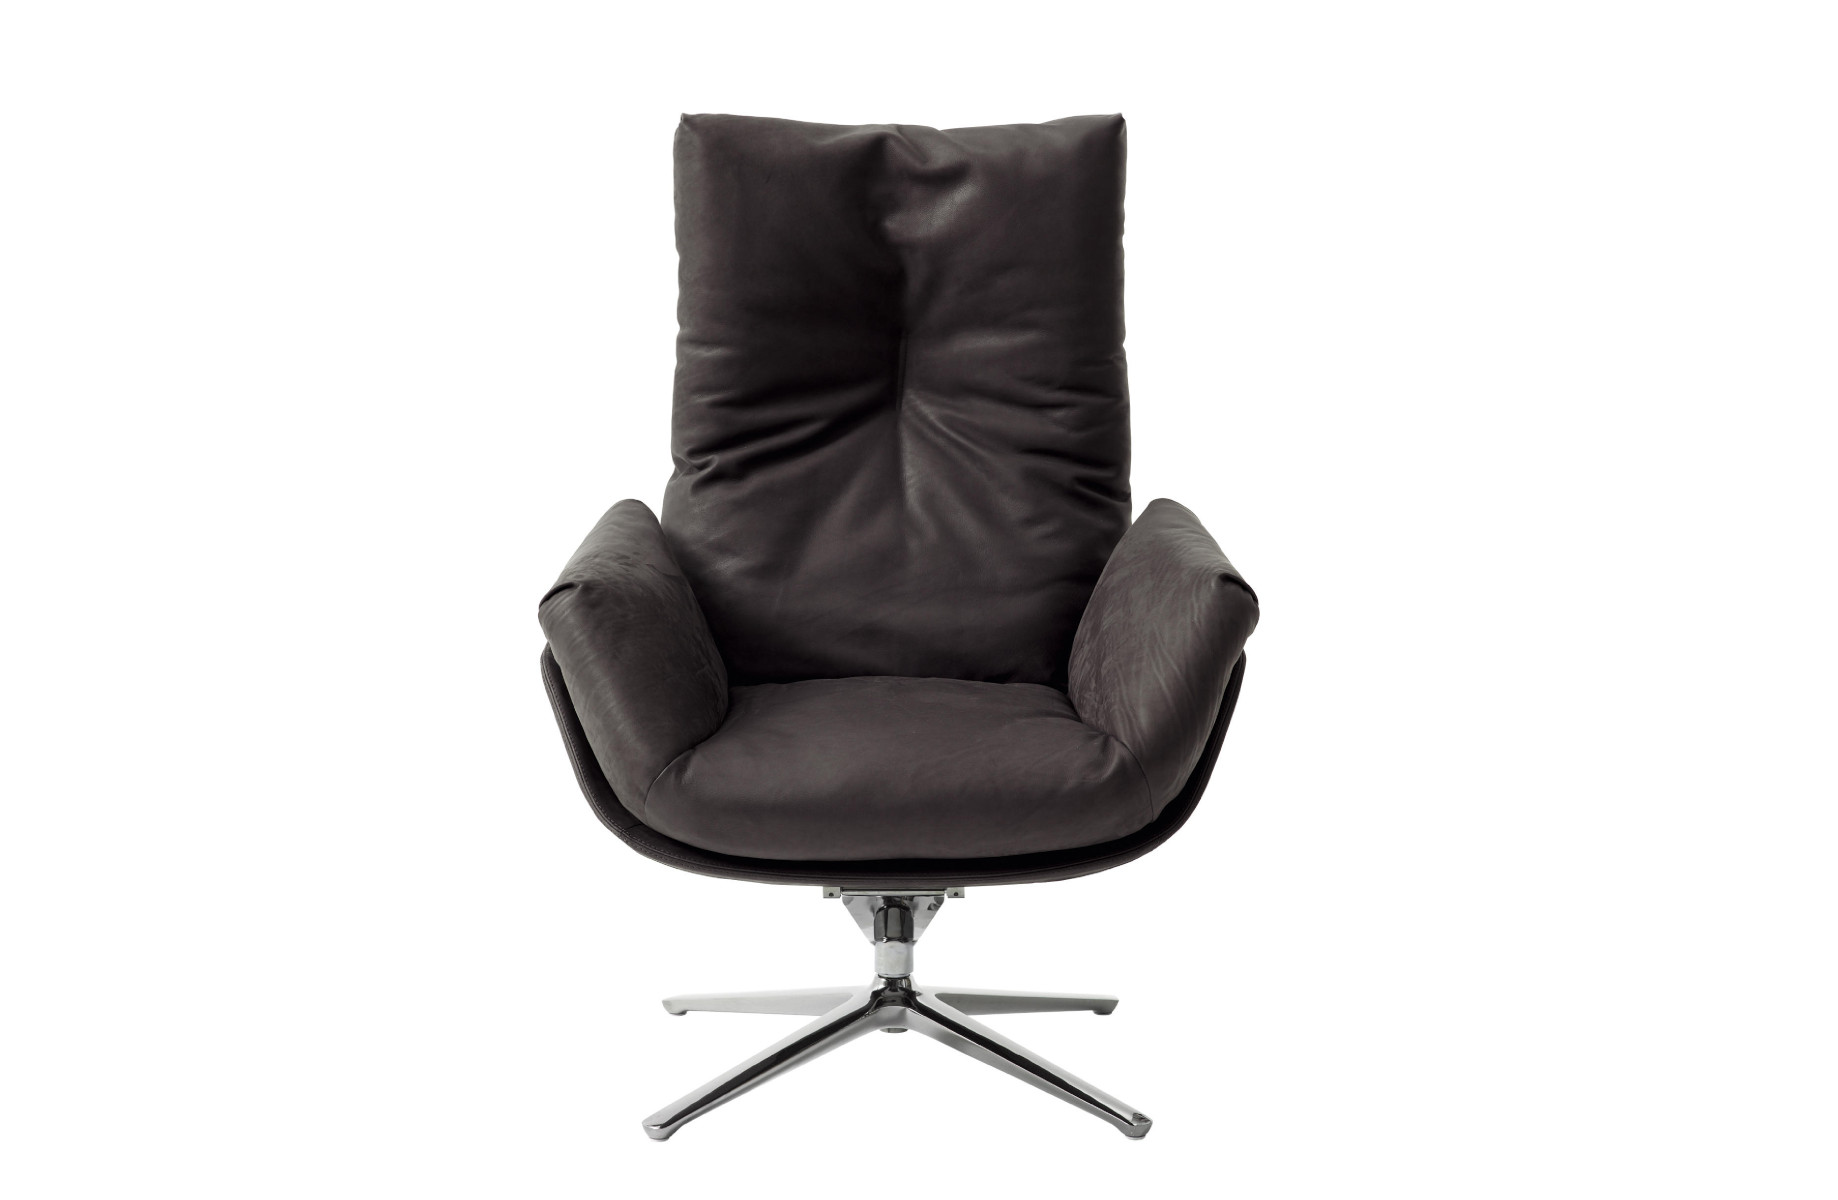 Relaxsessel Cor Cordia Lounge Online Bei Schlafsofa Shop De